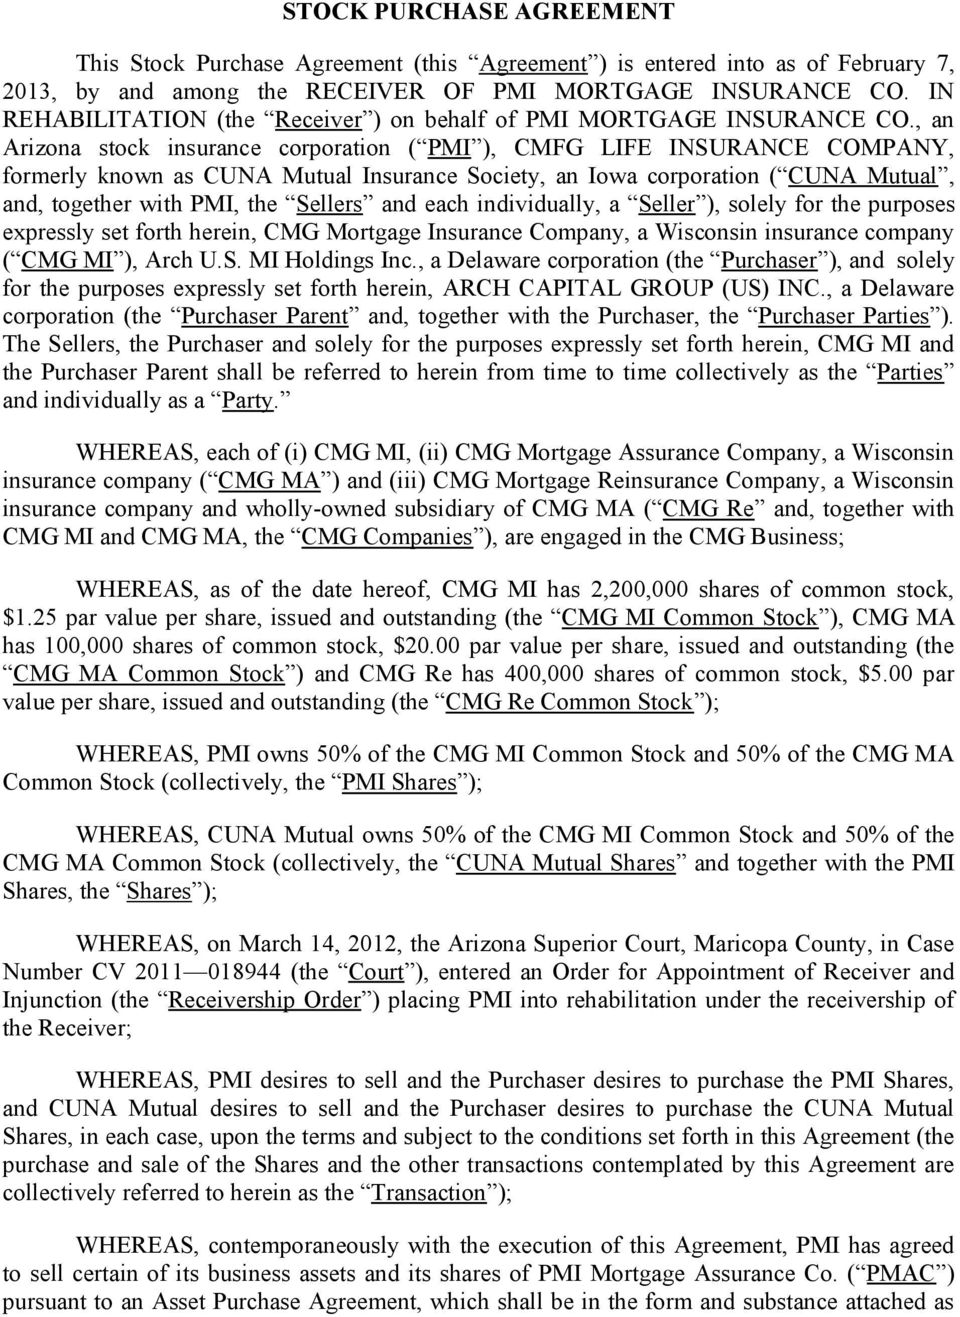 Stock Purchase Agreement By And Among The Receiver Of Pmi Mortgage